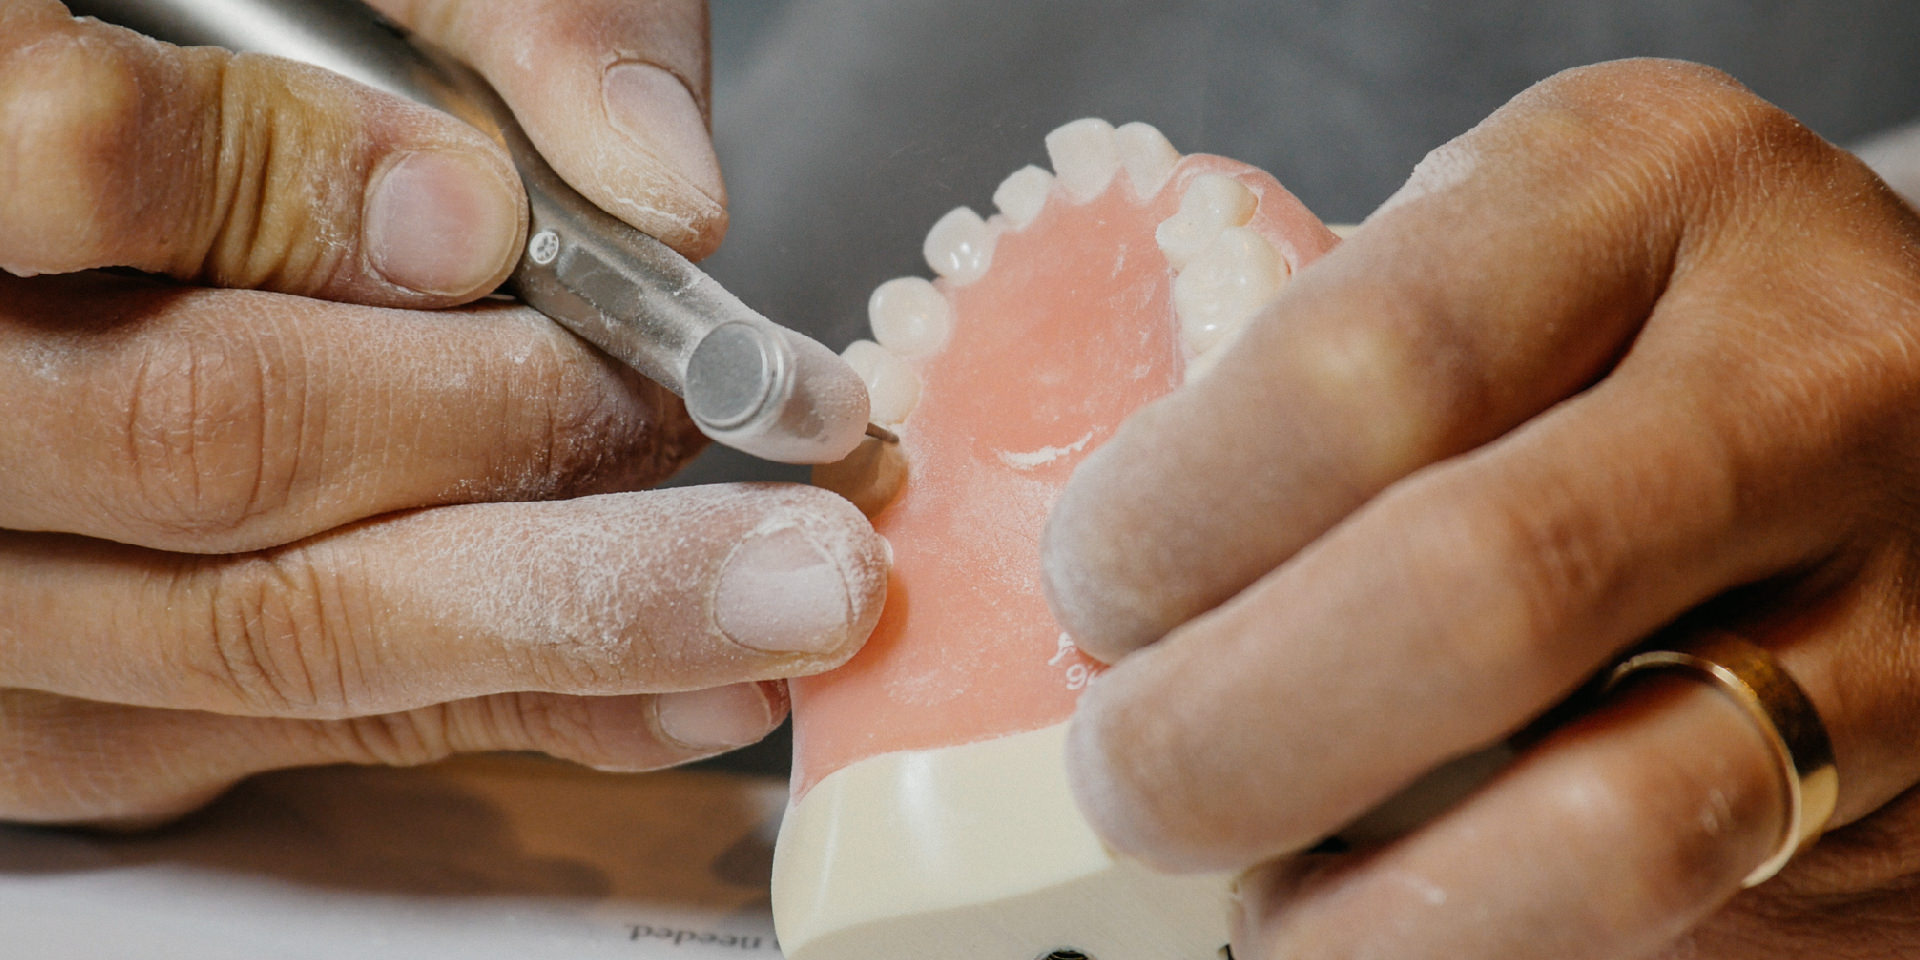 Hands preparing a tooth on a typodont for a pediatric zirconia crown placement.